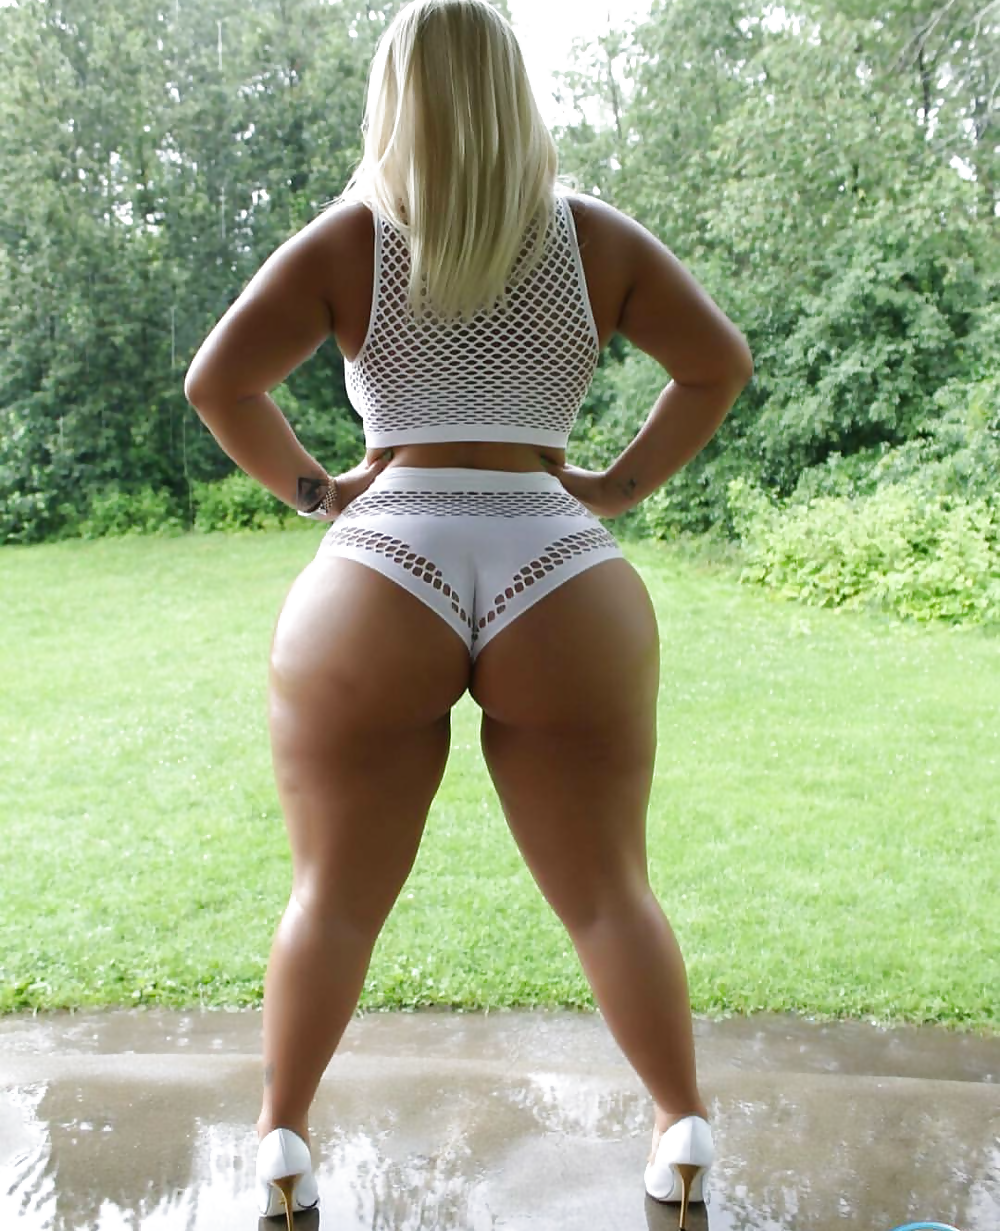 Wide Hips Phat Ass Curvy Curves